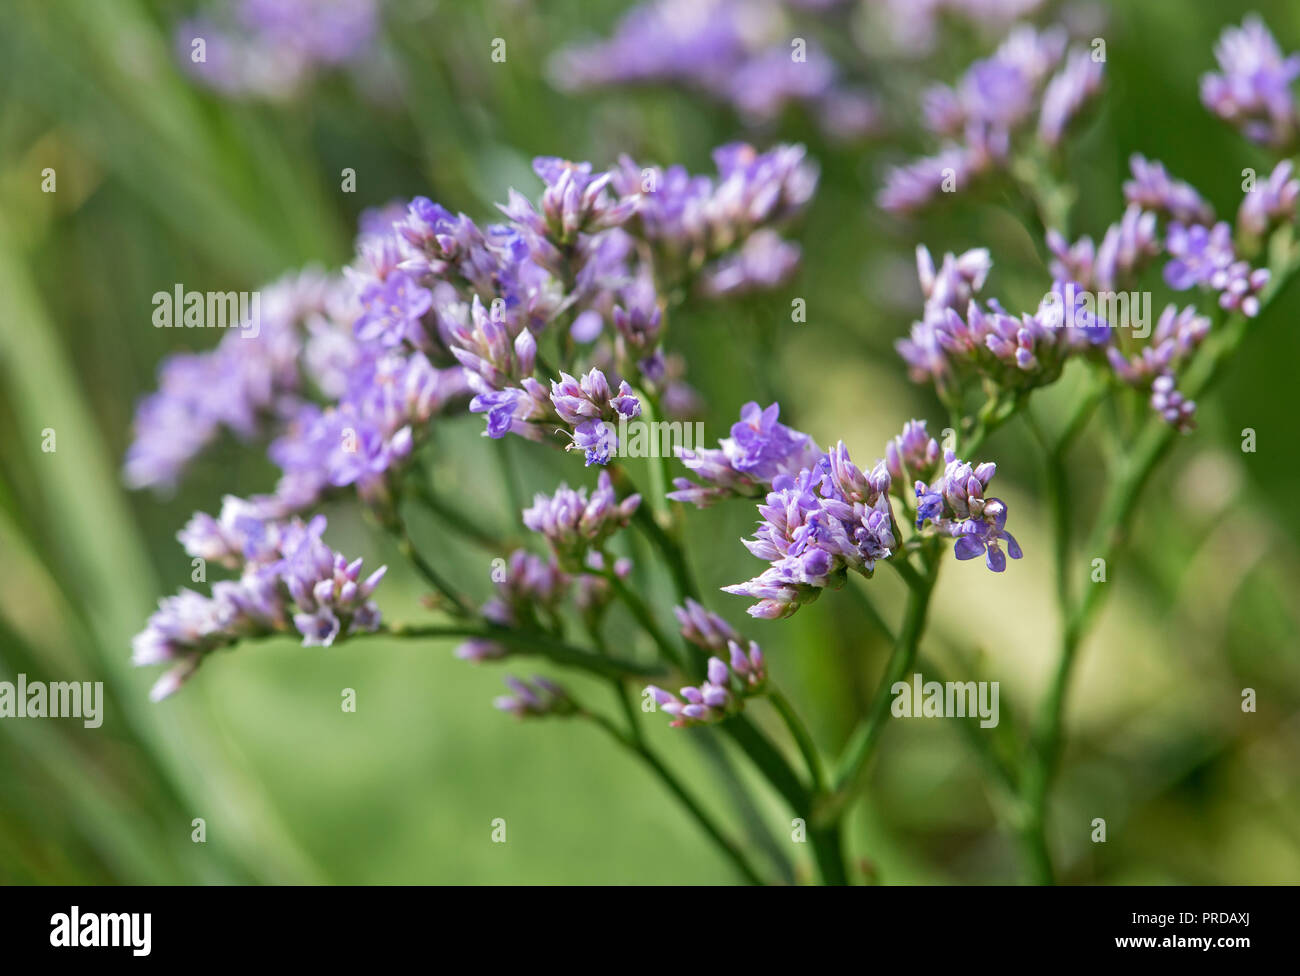 Common sea lavender (Limonium vulgare), North Sea Coast, Schleswig-Holstein, Germany - Stock Image